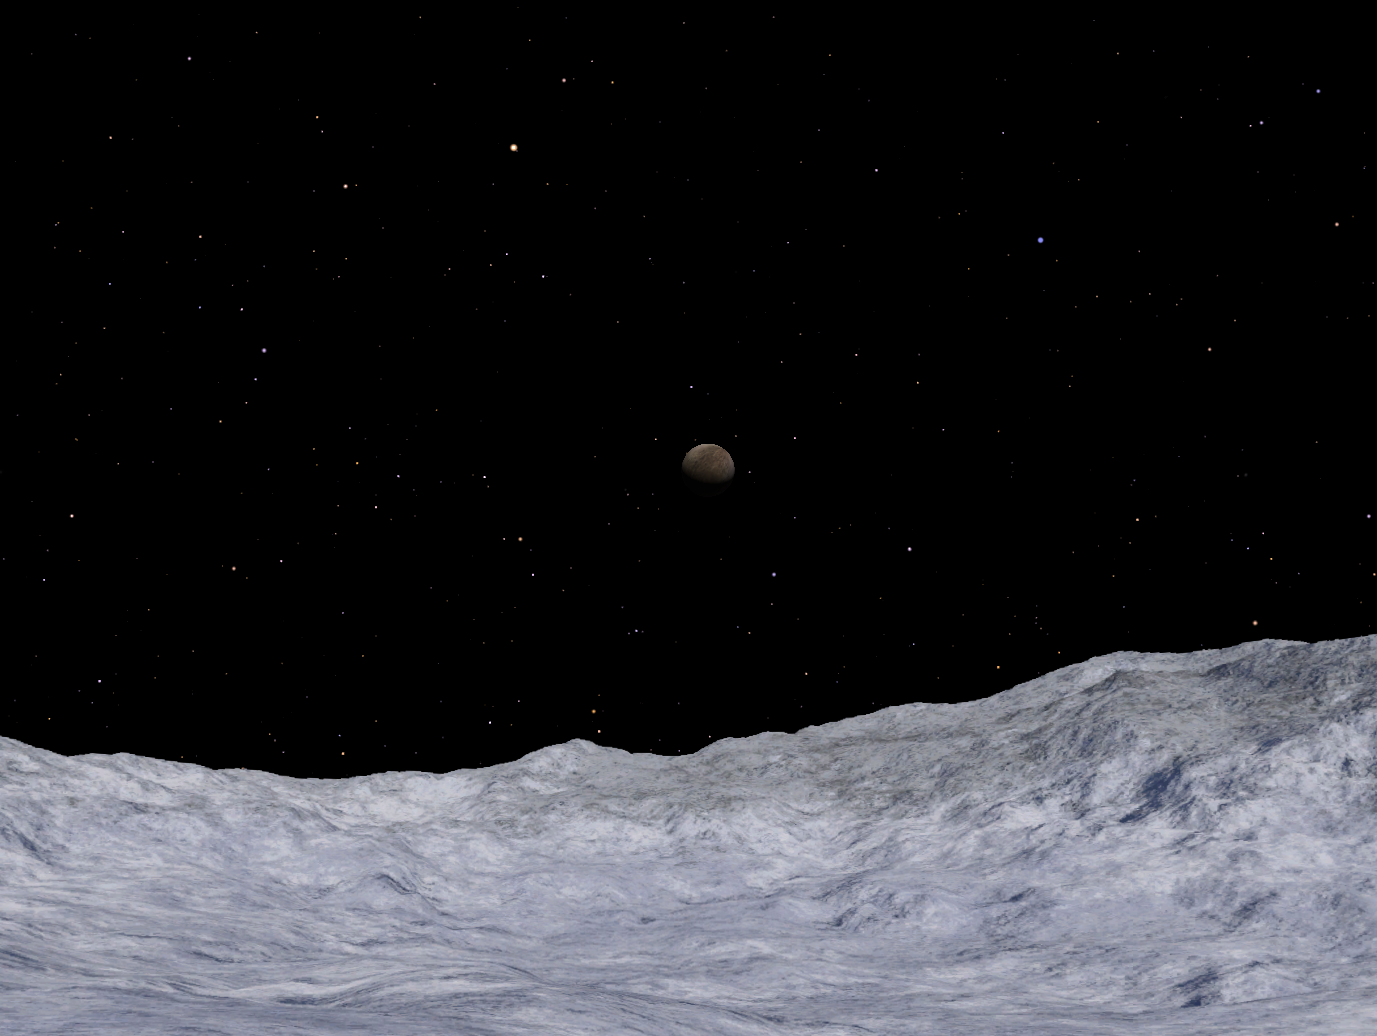 Charon as seen from the surface of Pluto.